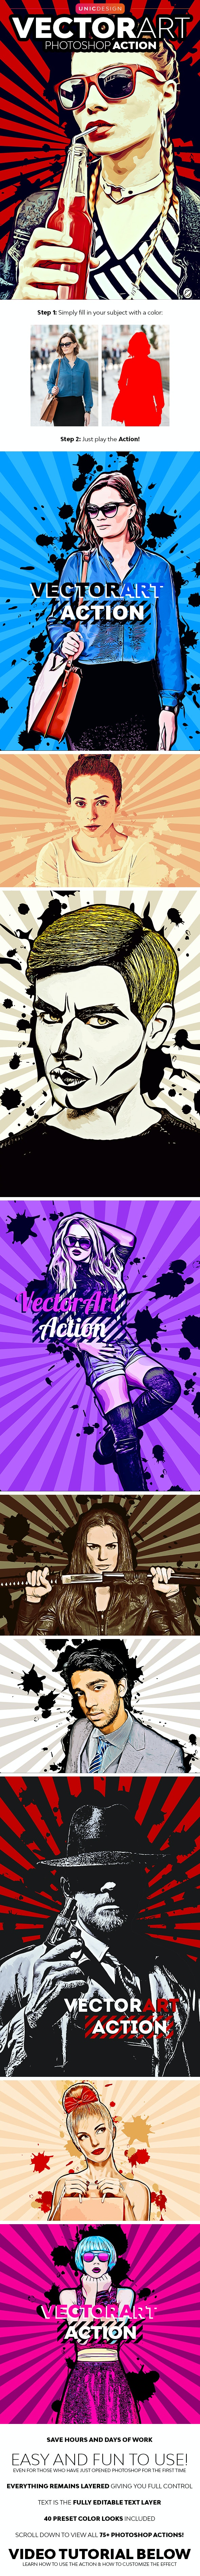 VectorArt Photoshop Action - Photo Effects Actions